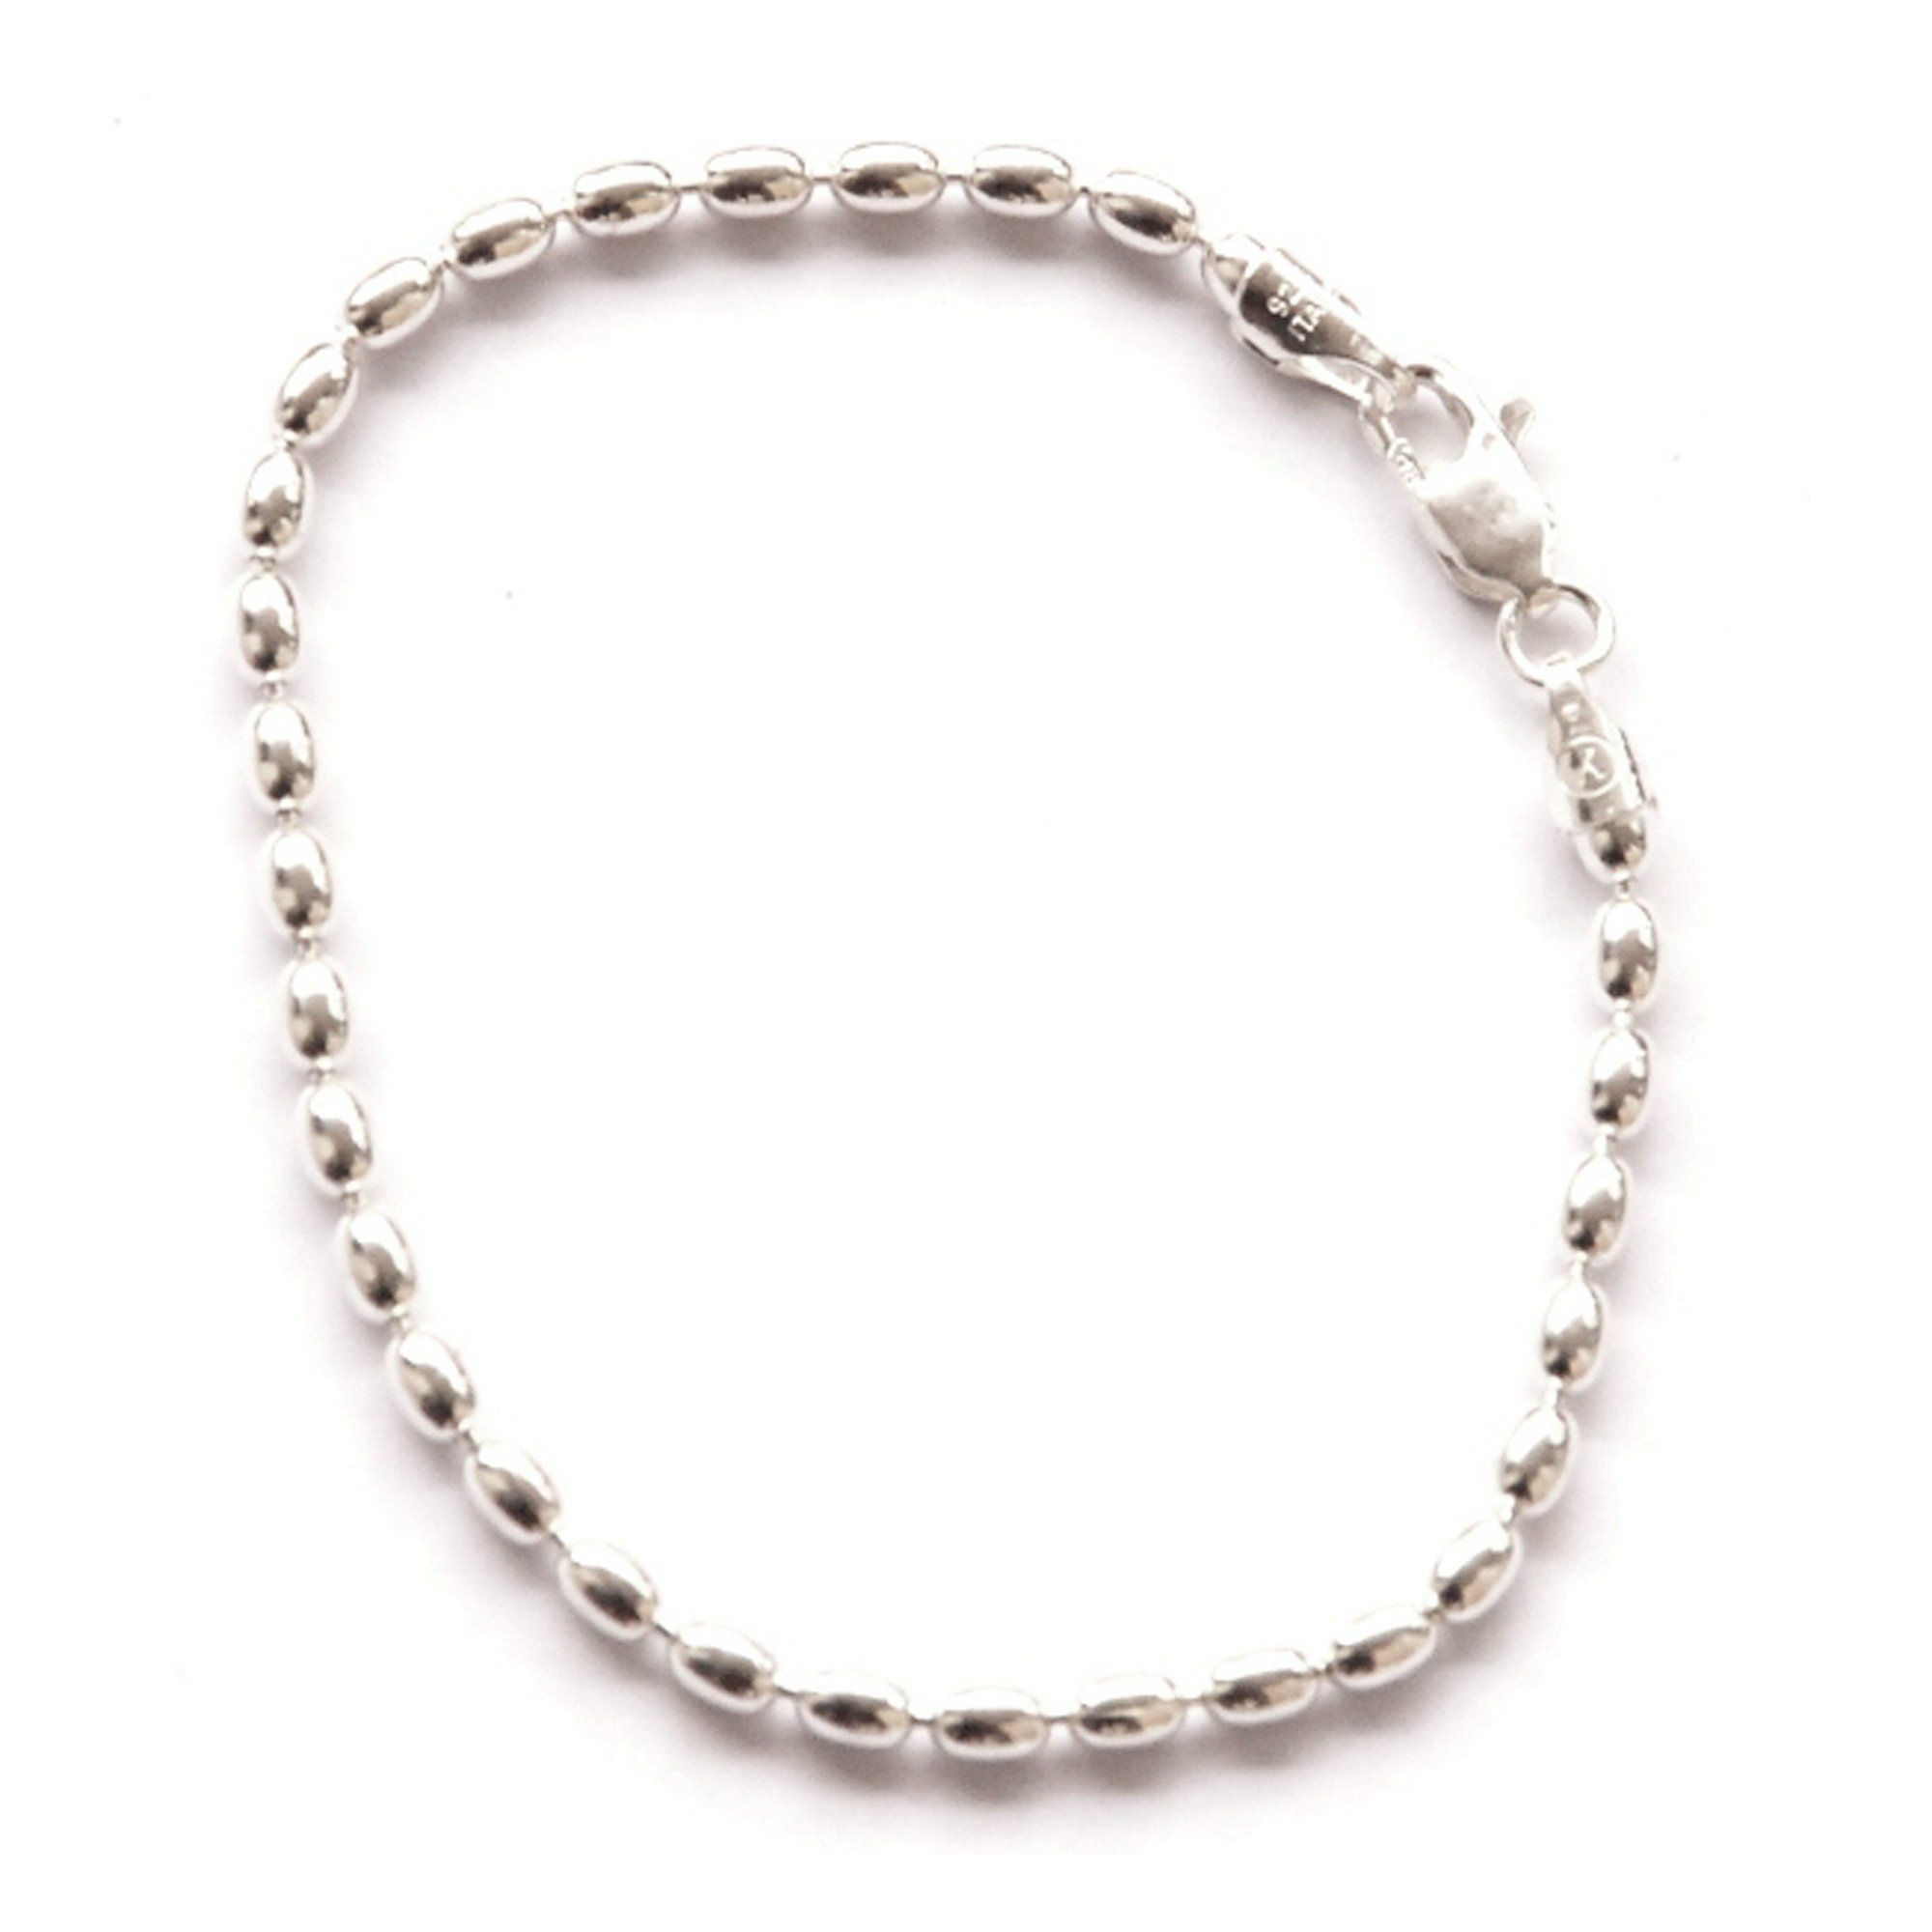 Sterling Silver 10inch Charleston Rice Bead Link Anklet Small Ankle Bracelet 2x3mm Oval Beads Italy You Can G Rice Bead Ankle Bracelets Charleston Rice Beads